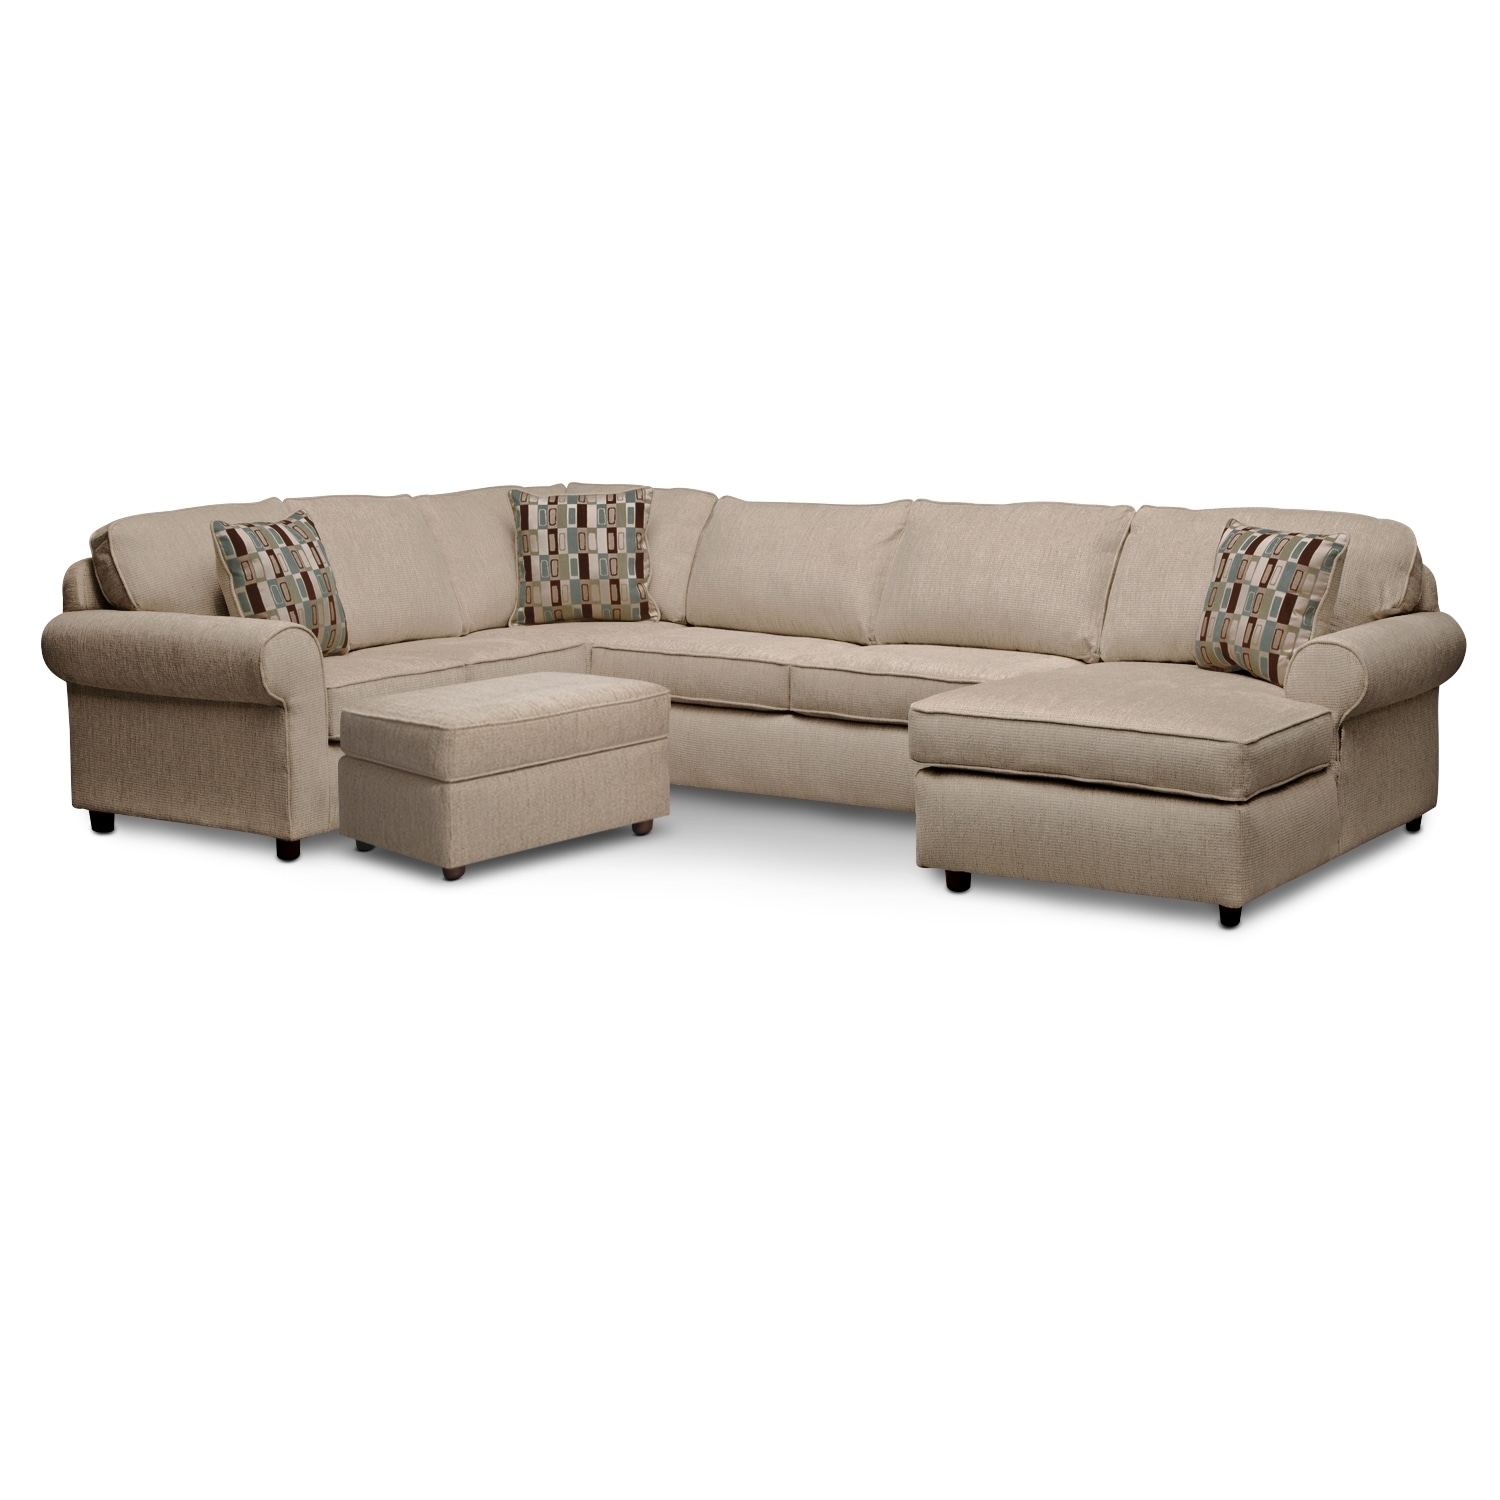 Monarch II 3 Pc. Sectional and Ottoman